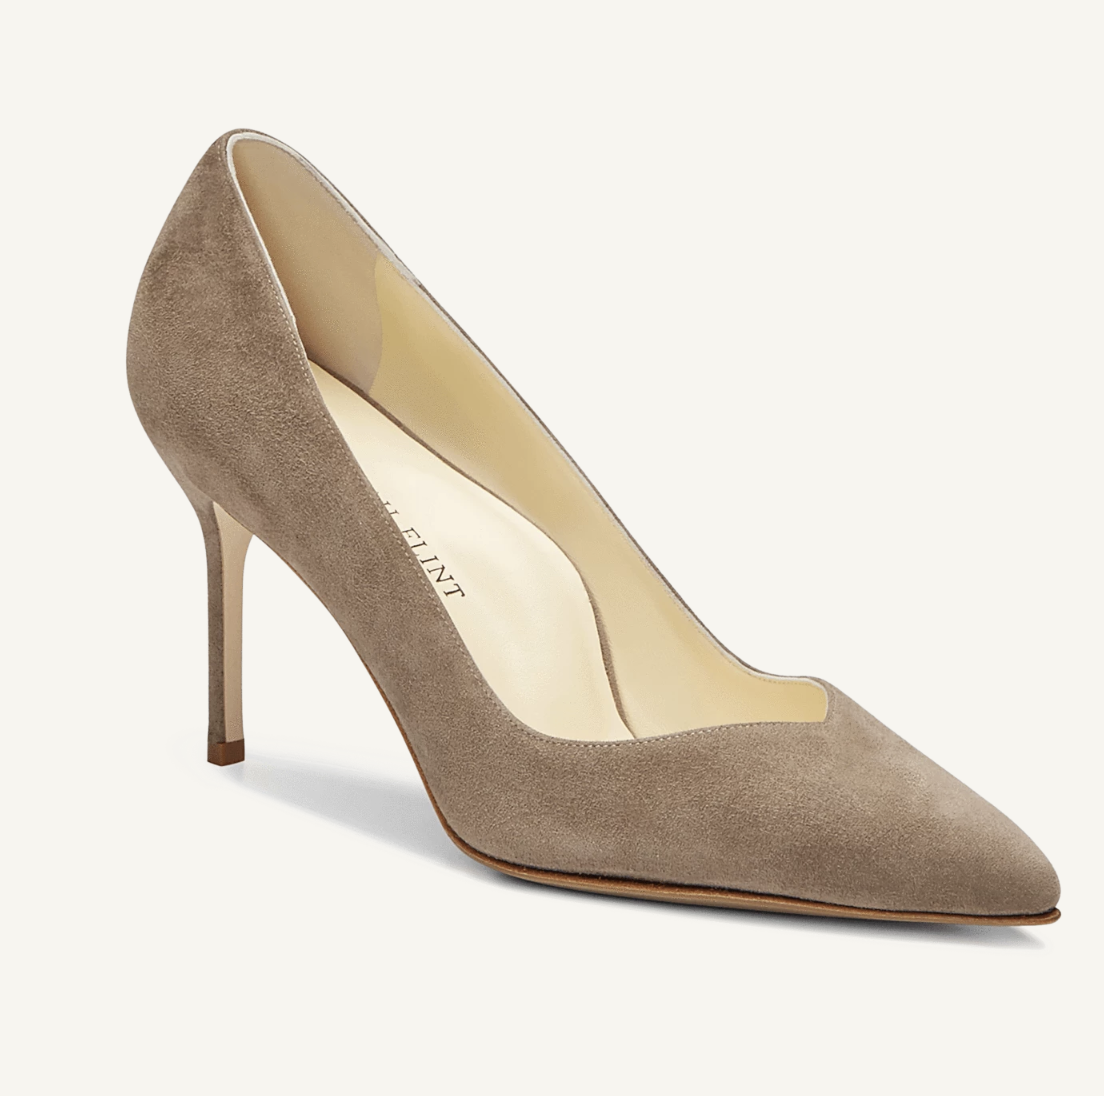 Sarah Flint Perfect Pump Taupe Suede